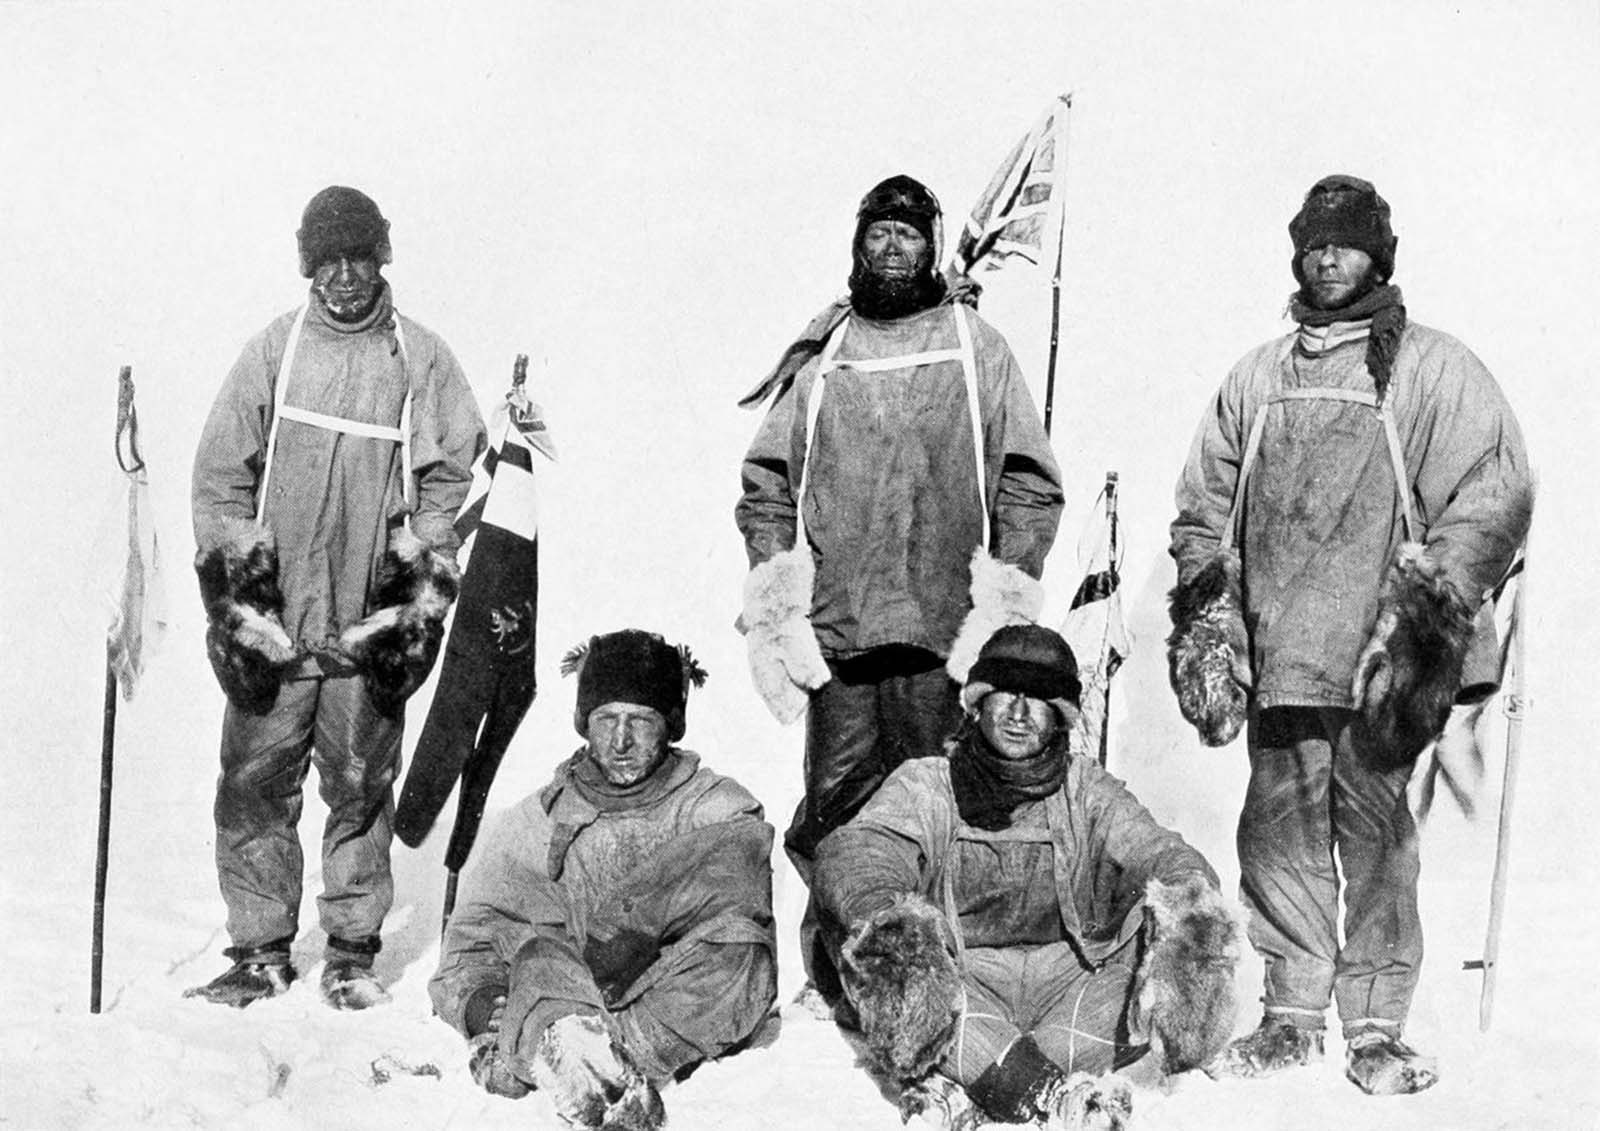 Dr. Wilson, Capt. Scott, Capt. Oates, Henry Bowers and Edgar Evans pose at the South Pole. January 18, 1912.